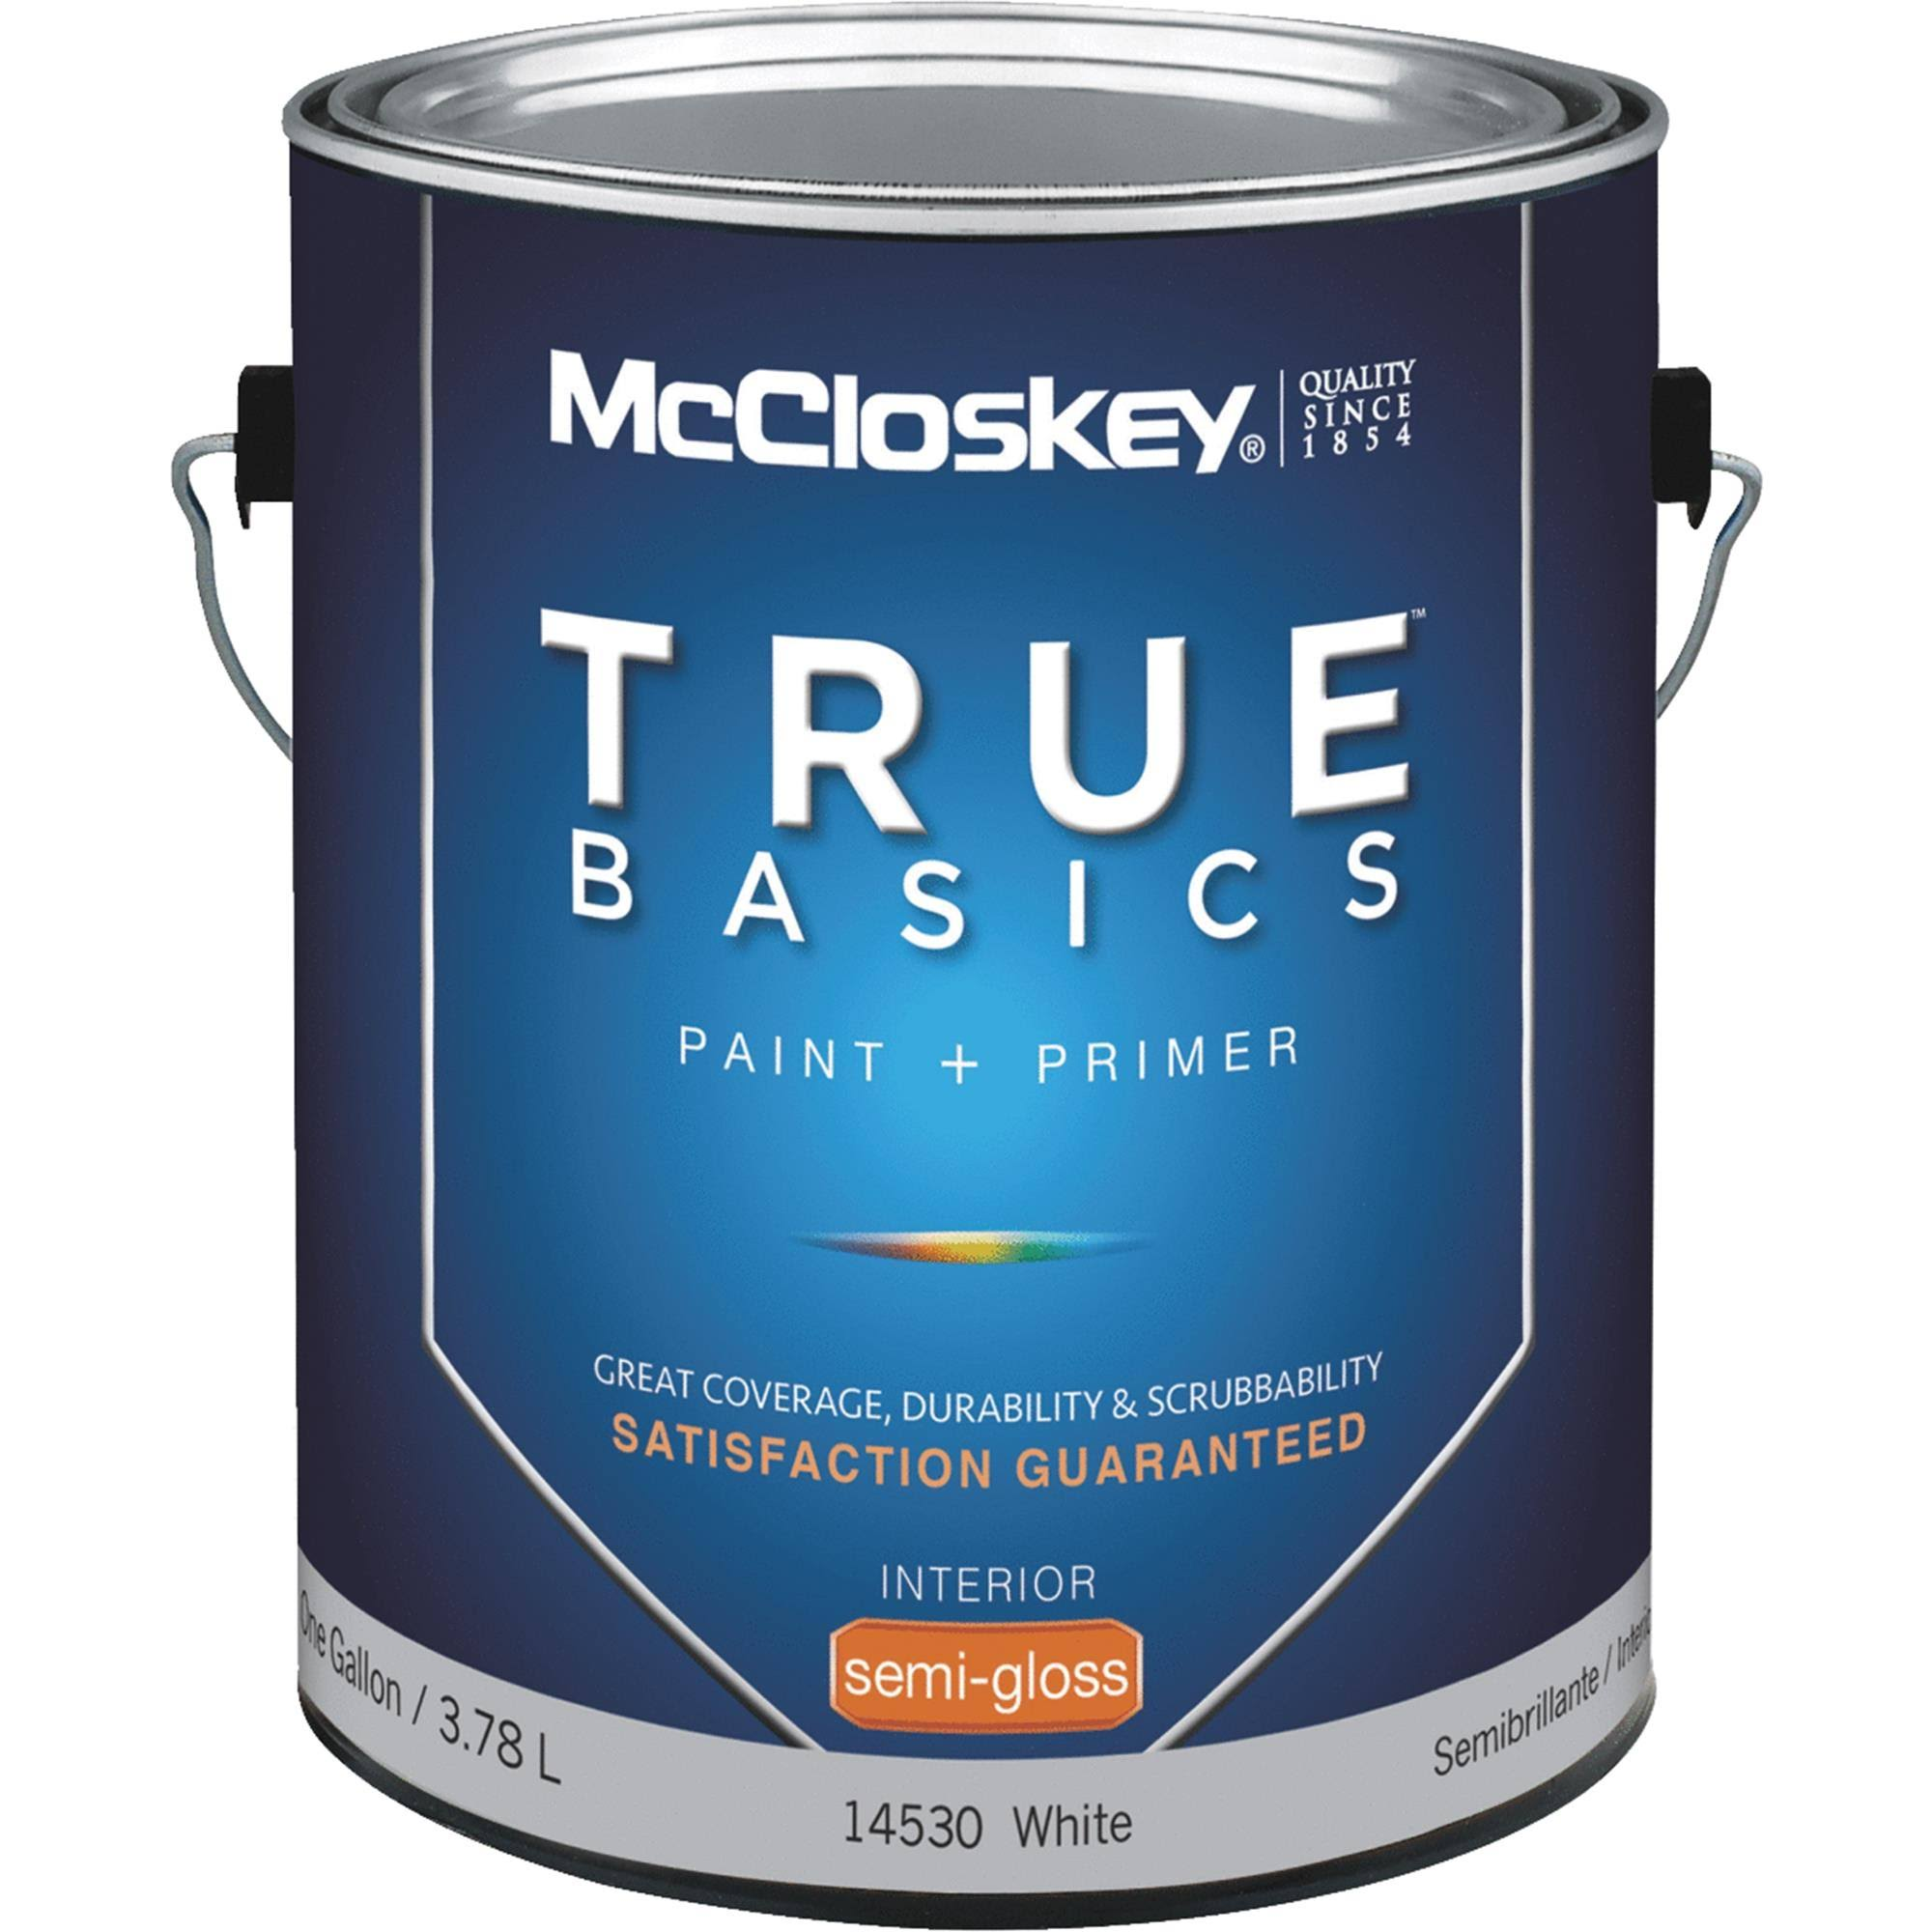 McCloskey True Basics Latex Paint & Primer Semi-Gloss Interior Wall Paint - 080.0014530.007